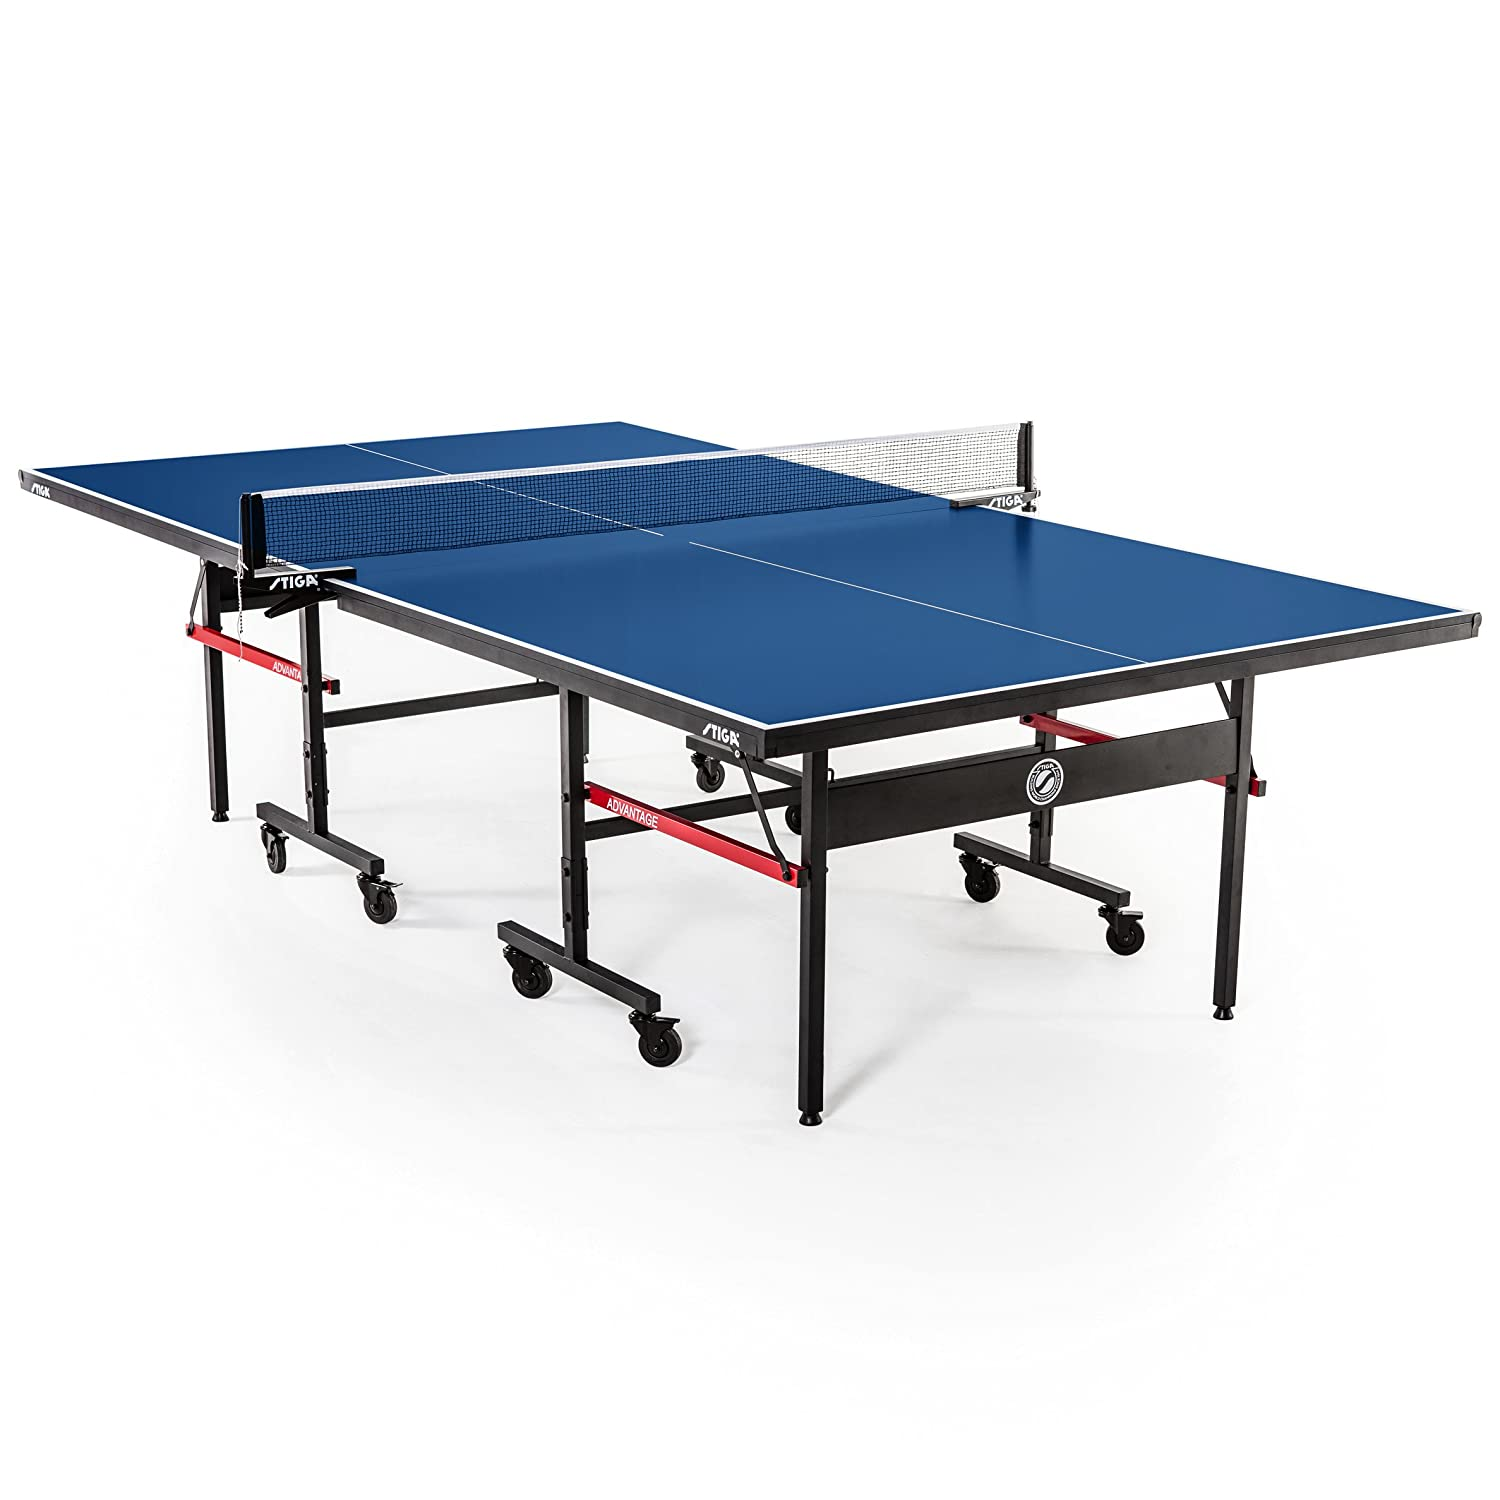 Amazoncom STIGA Advantage Indoor Table Tennis Table Sports